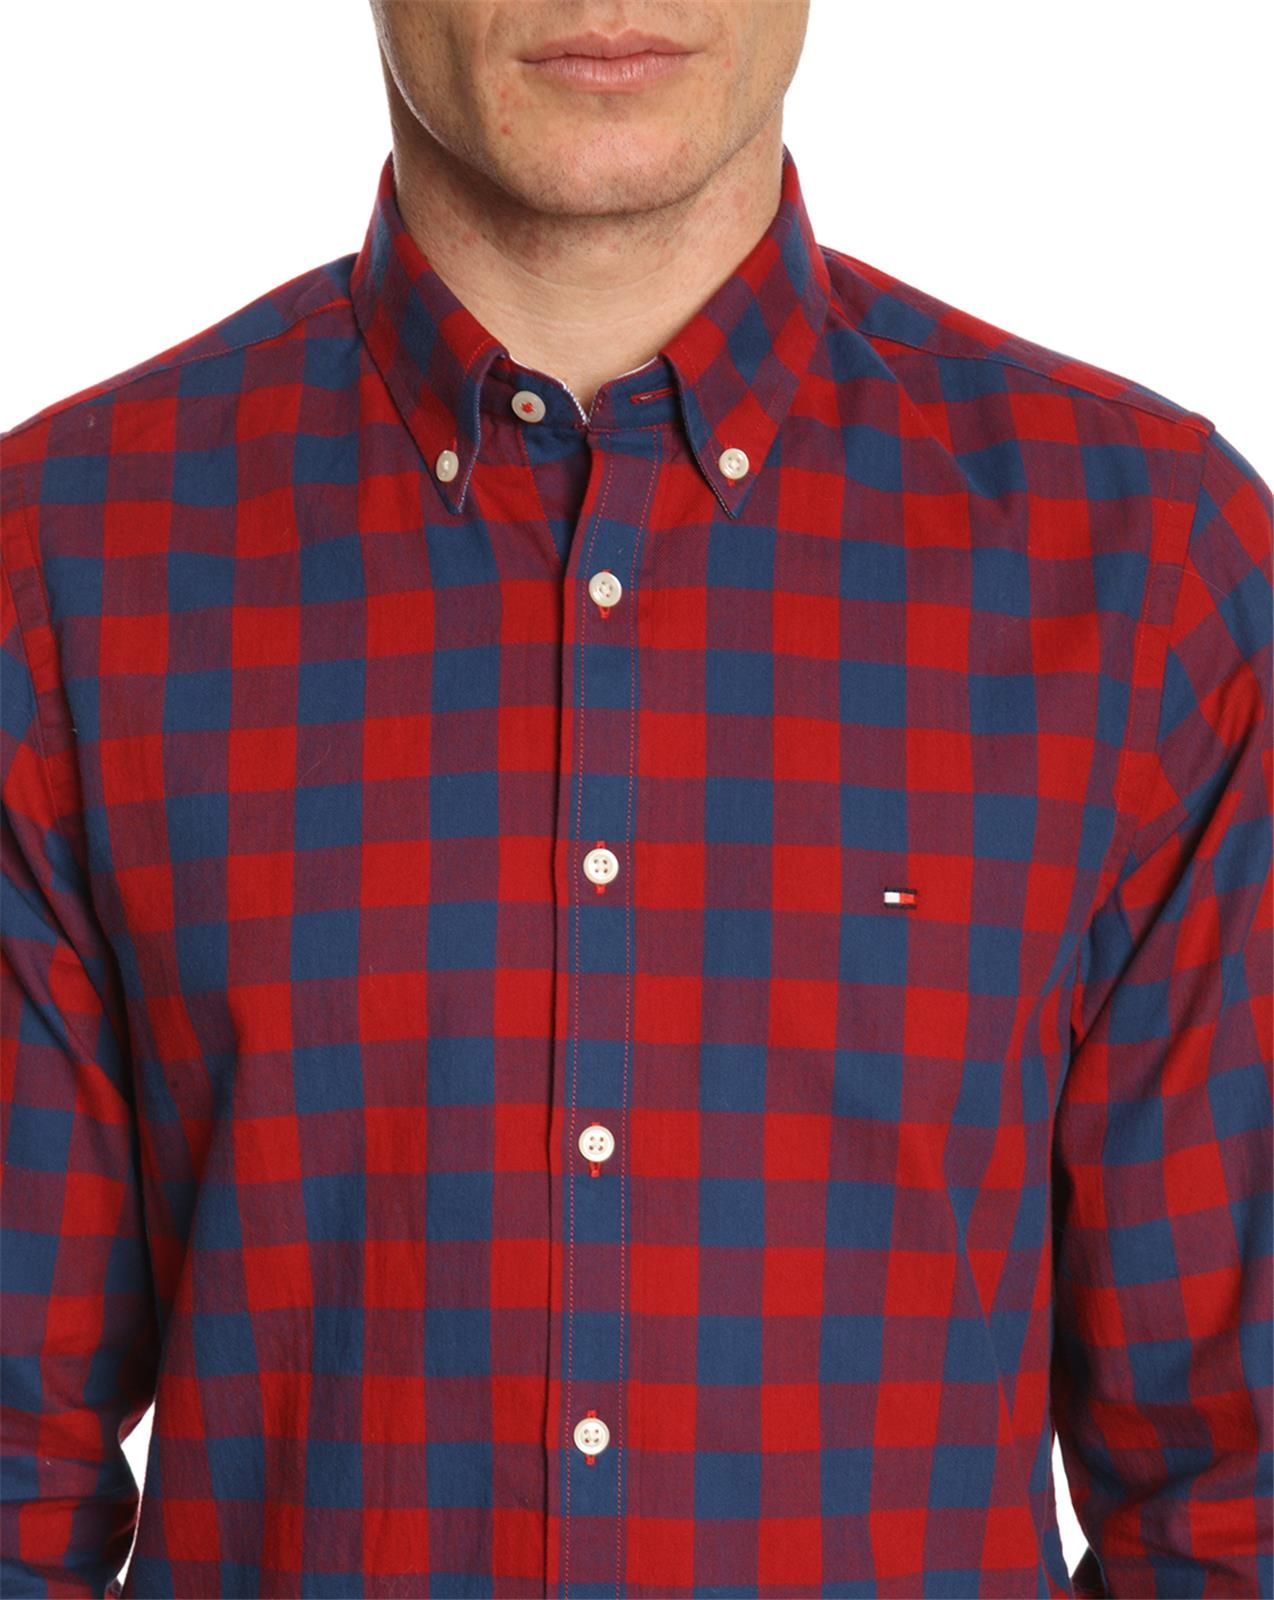 19 ridiculous school rules that will make you want to for Red white and blue plaid shirt